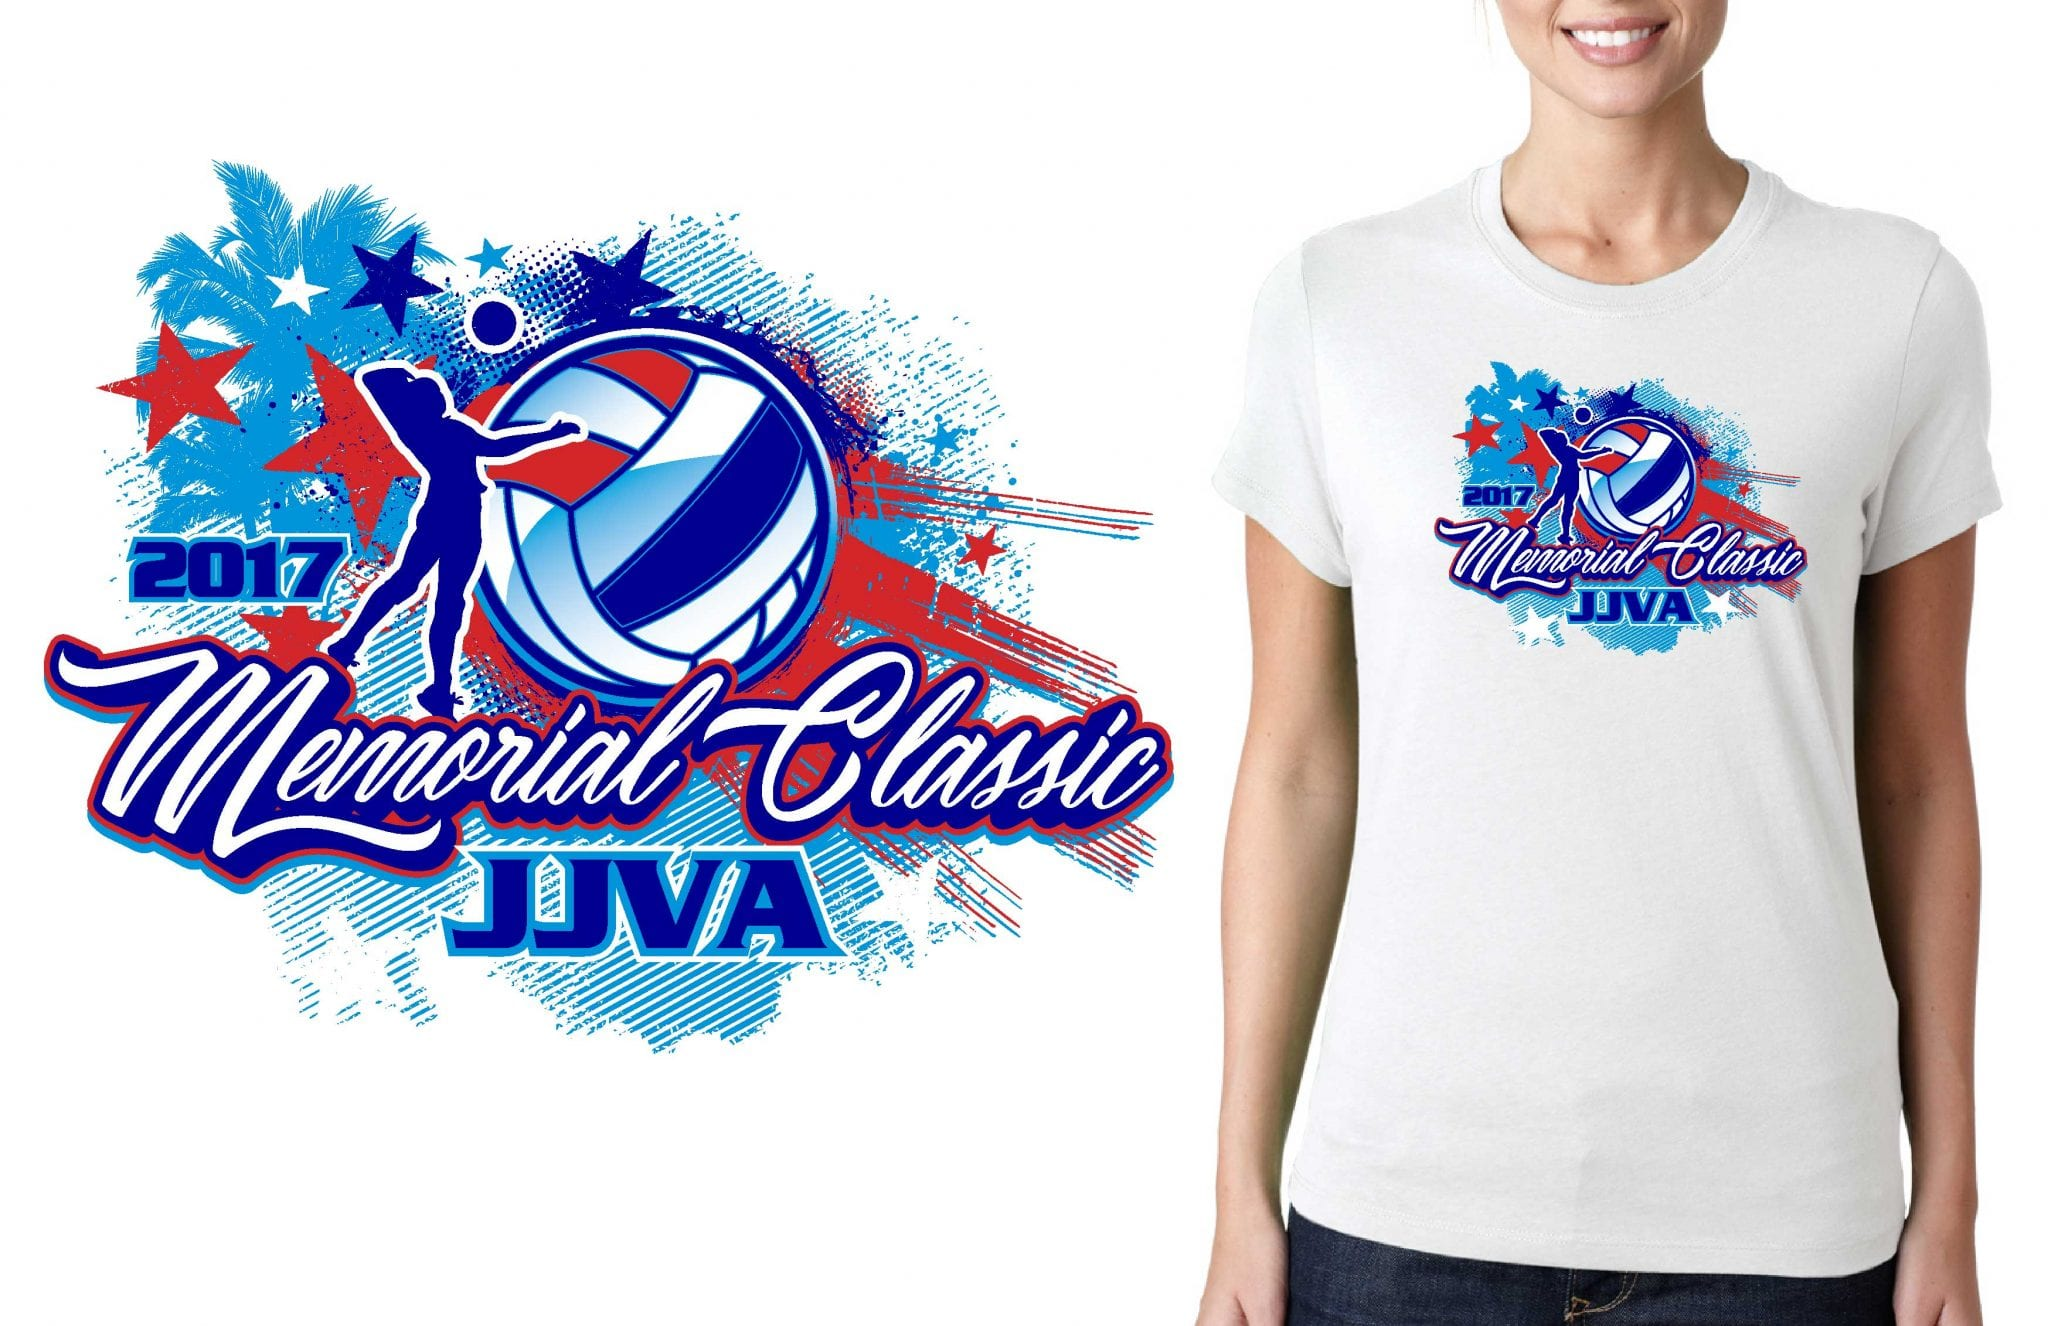 2017 memorial classic vector logo design for volleyball t for T shirt design 2017